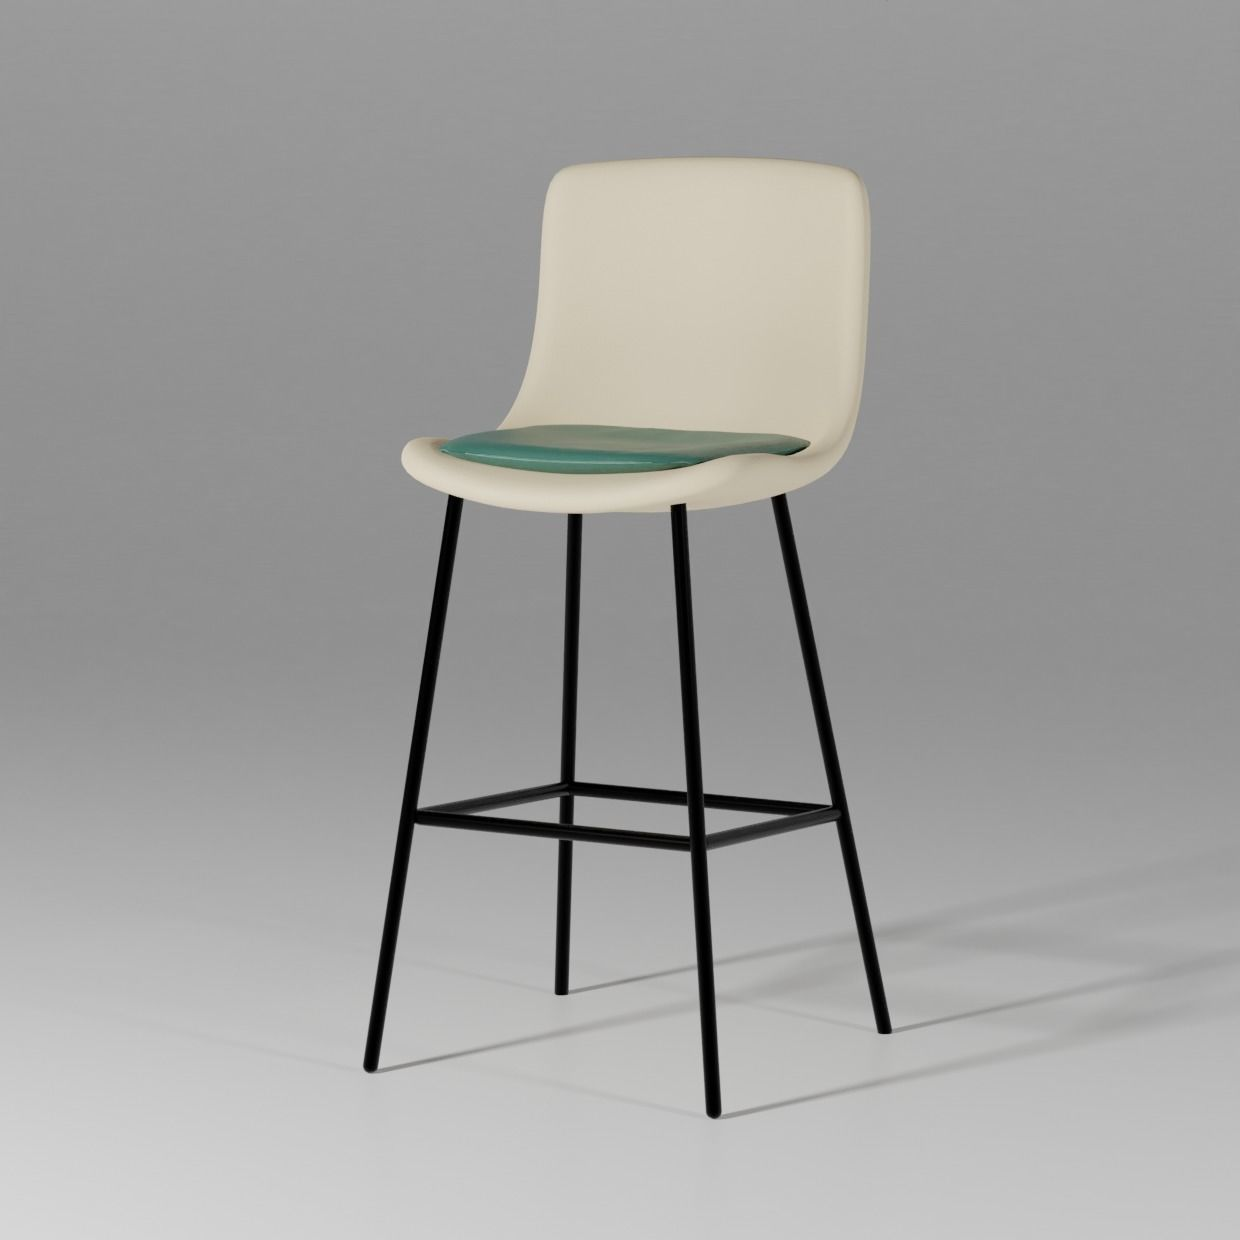 Pato 4 Leg Barstool - By Welling and Ludvik